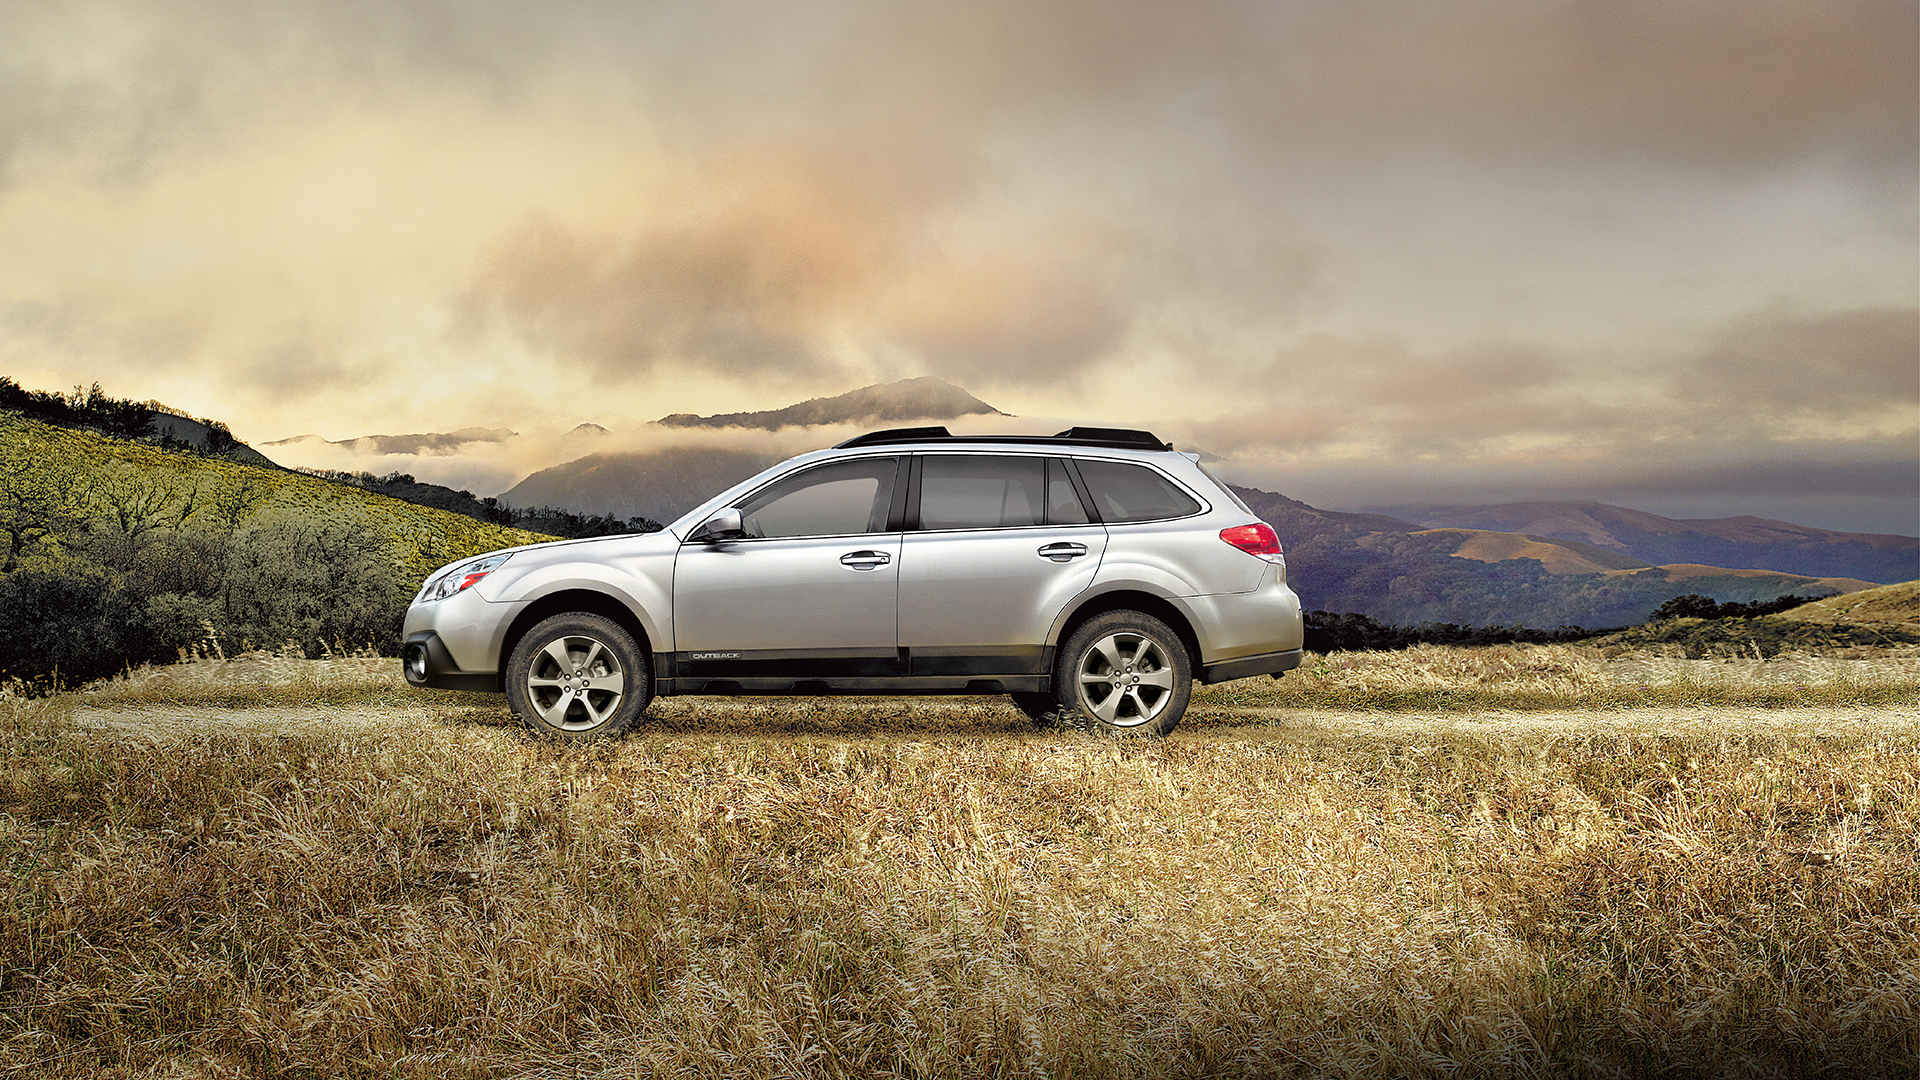 2014 Subaru Outback | Wallpaper | Golden Hillside Overlook